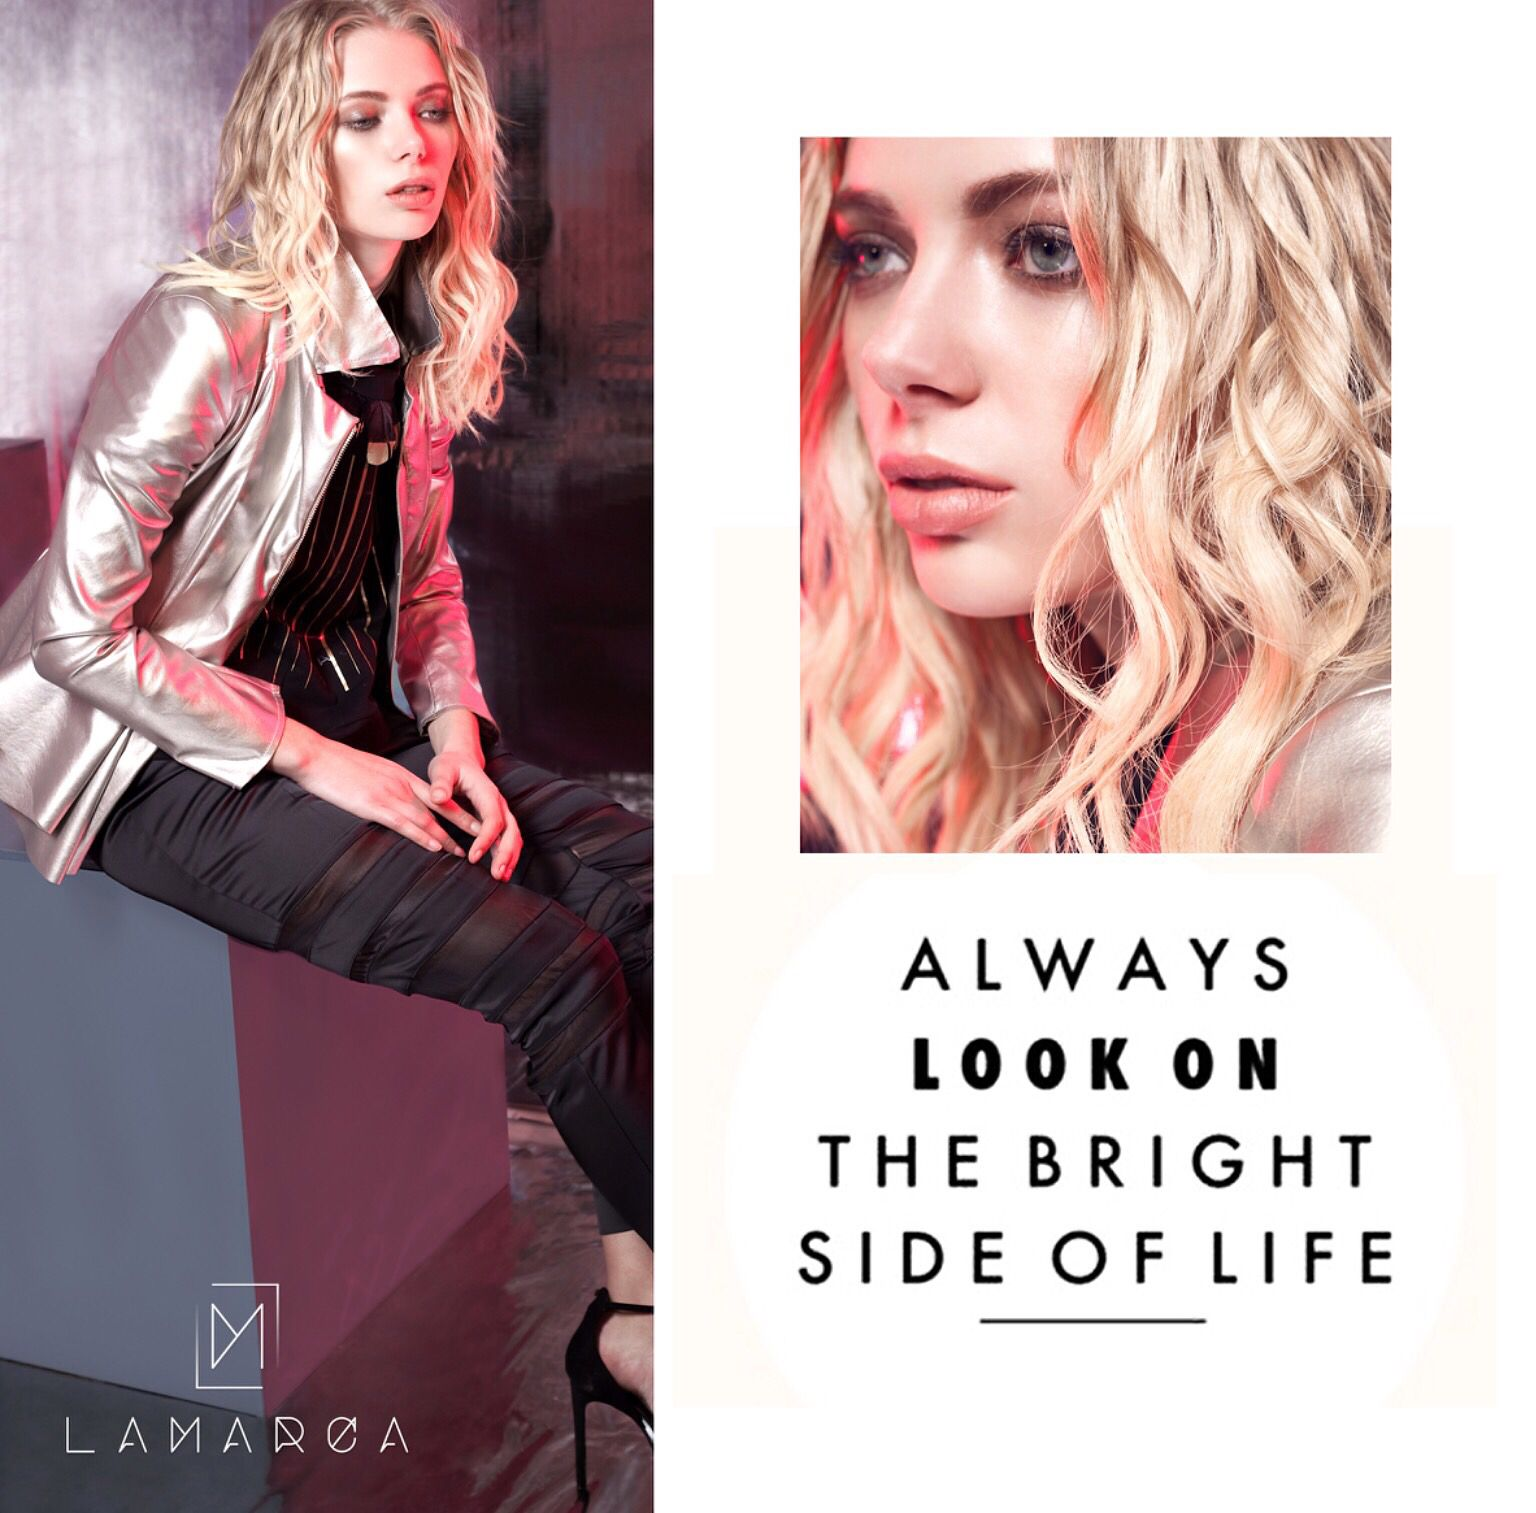 Have a nice Sunday ☀️ #alwayslookonthebrightside #goodmorning #sunday #new #collection #winter #style #sololamarca  #cometovisitus #website www.lamarcaofficial.it